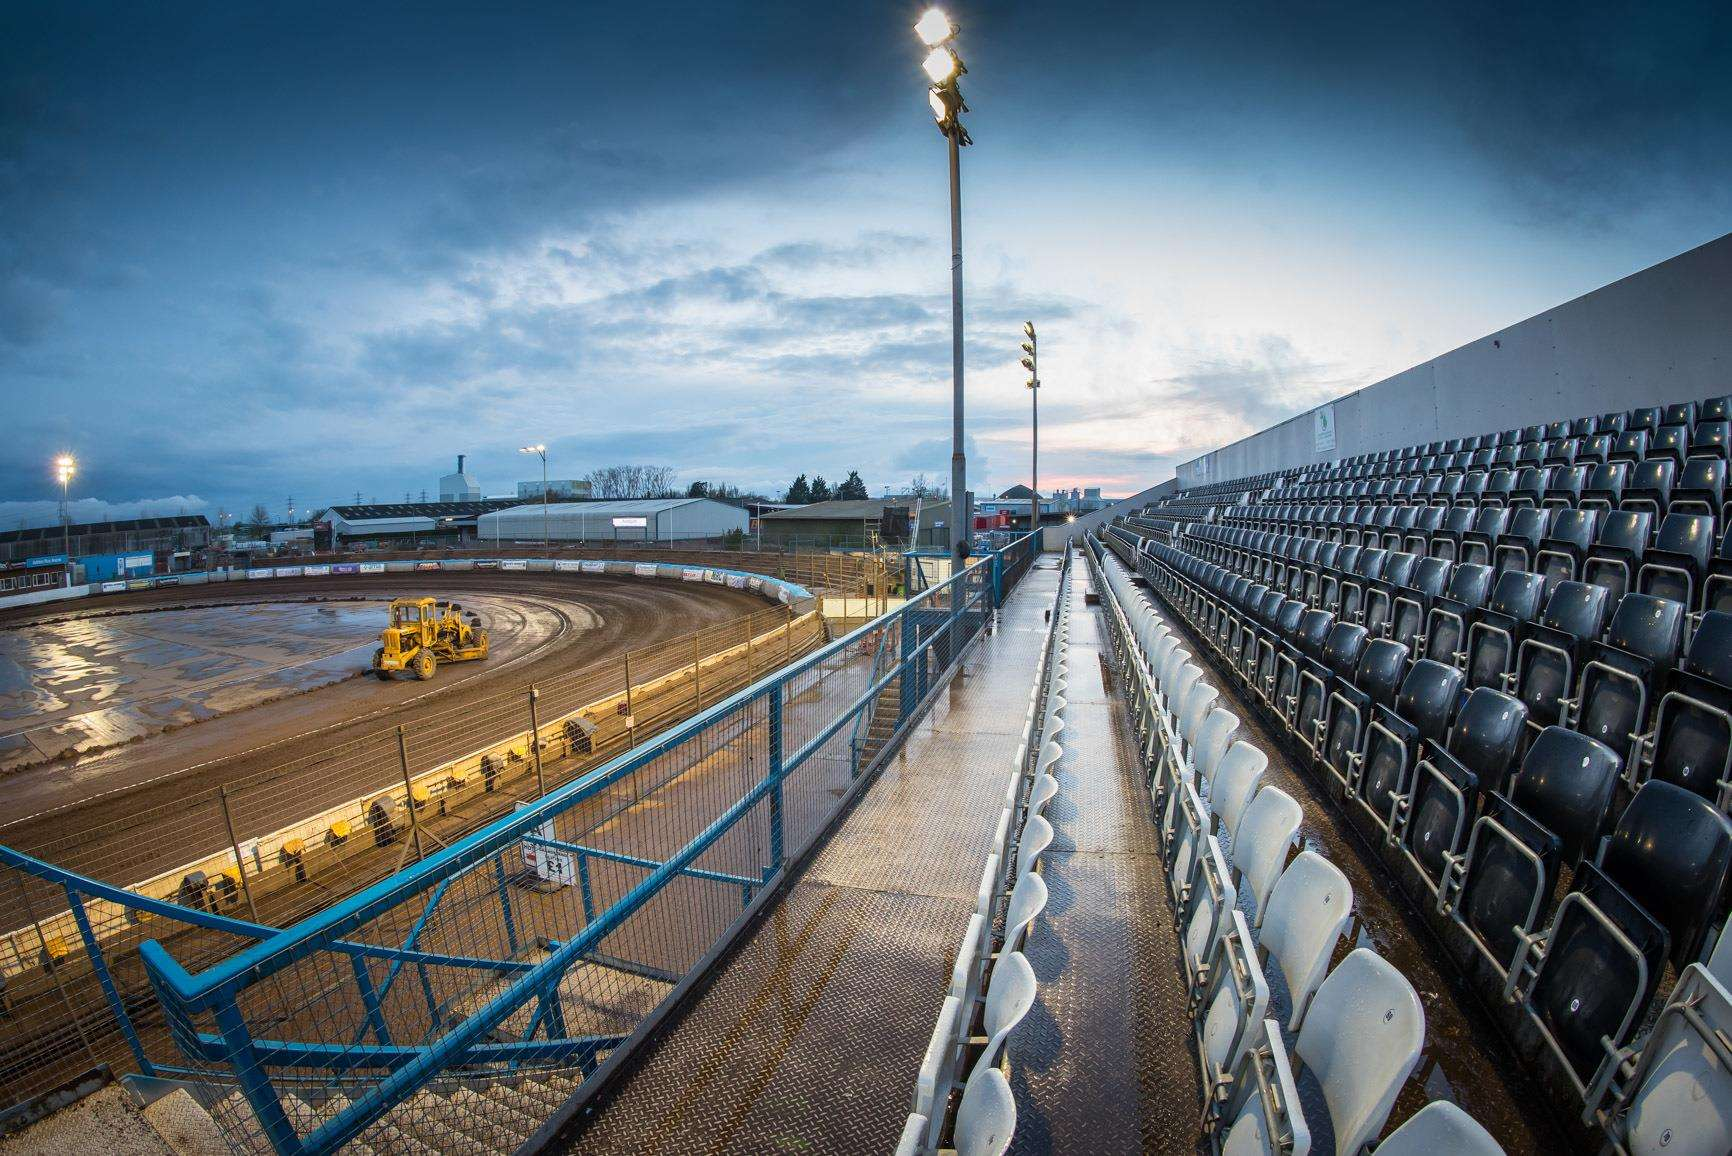 The Adrian Flux Arena - home of King's Lynn Speedway